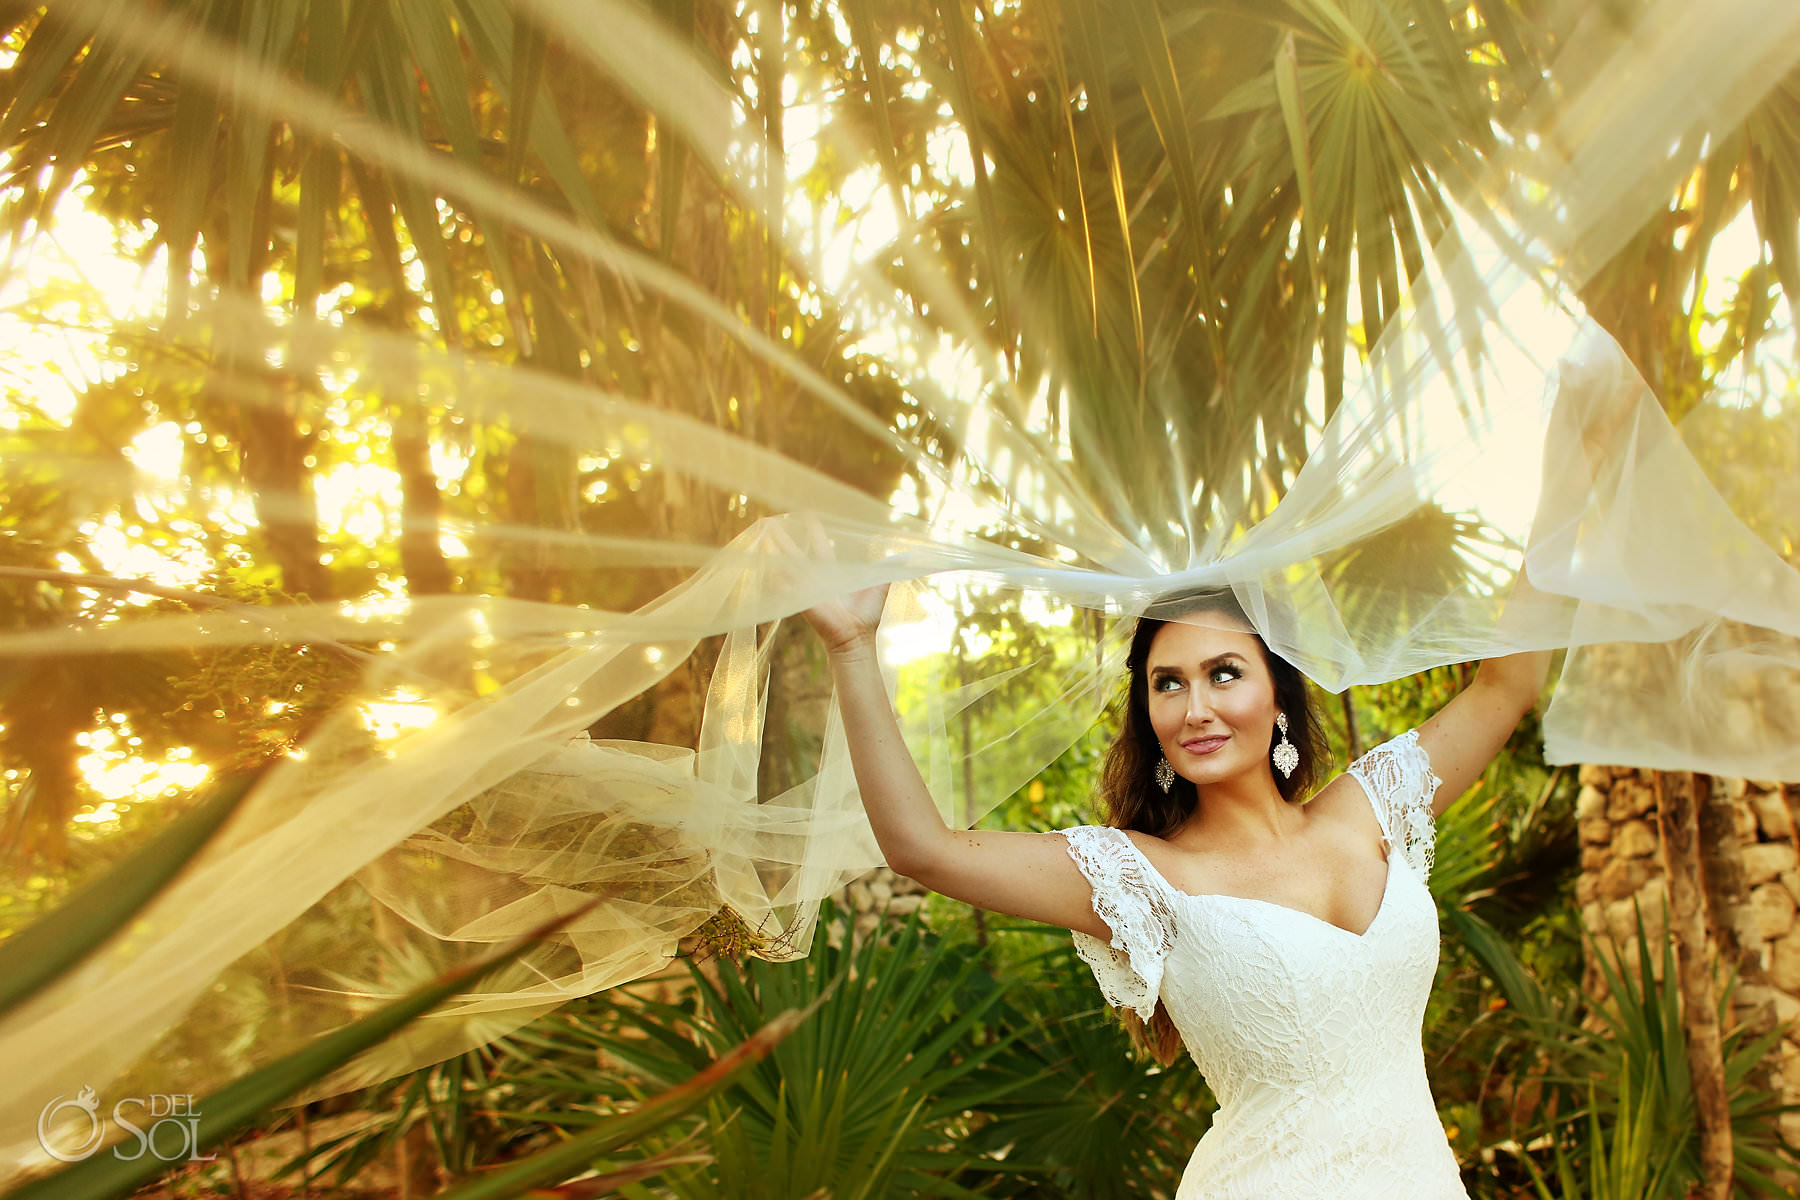 Hotel Xcaret Mexico Wedding photographer bride veil portrait